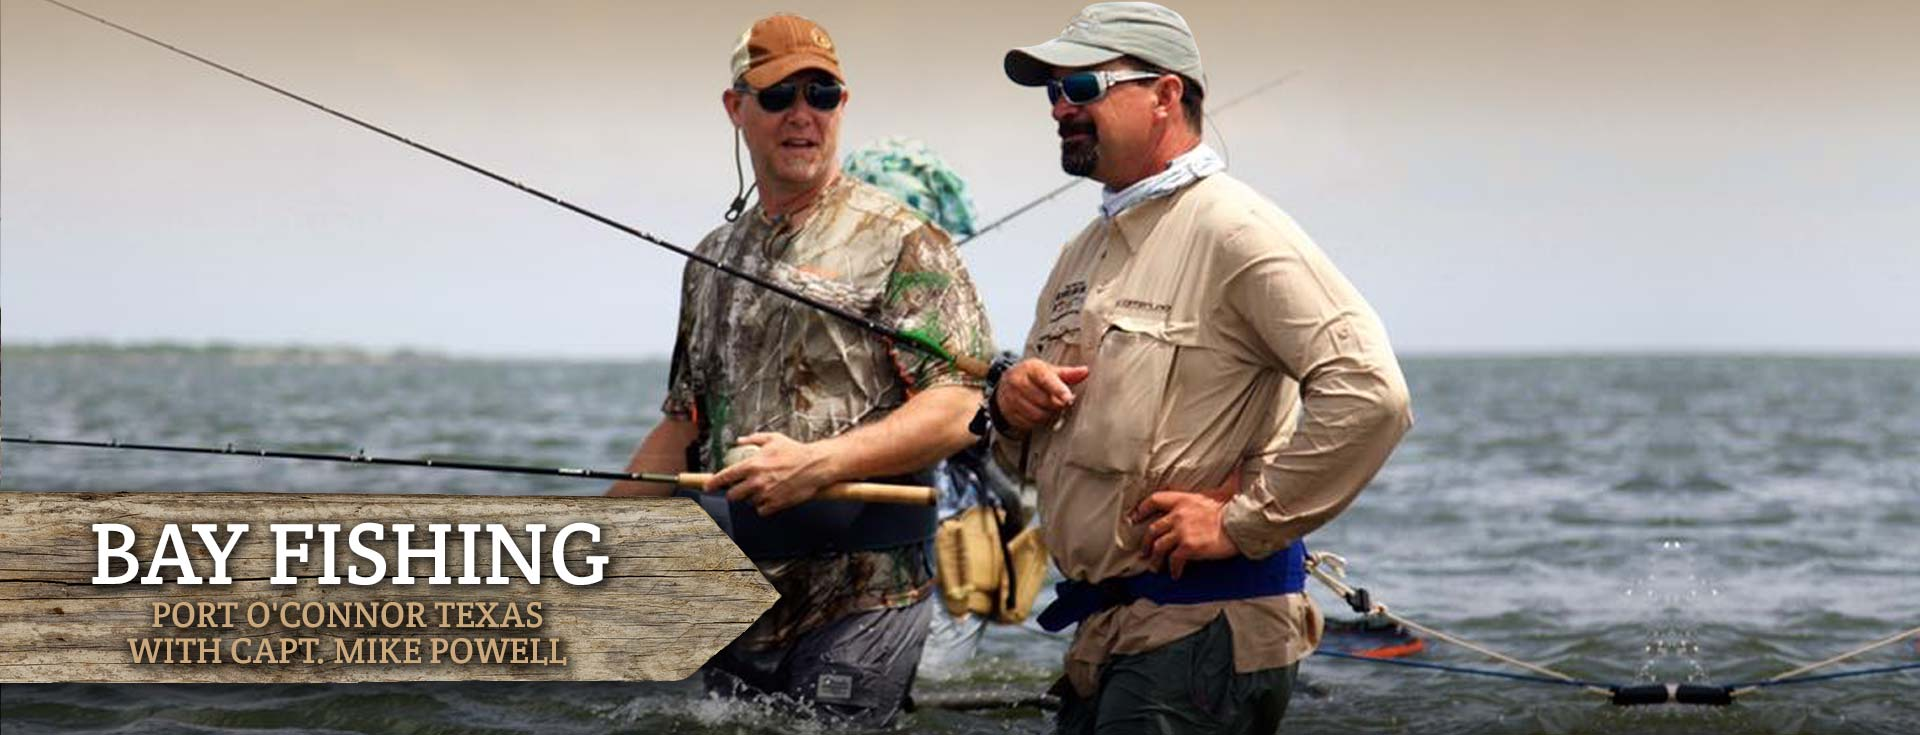 Guided Fishing in Port O'Connor